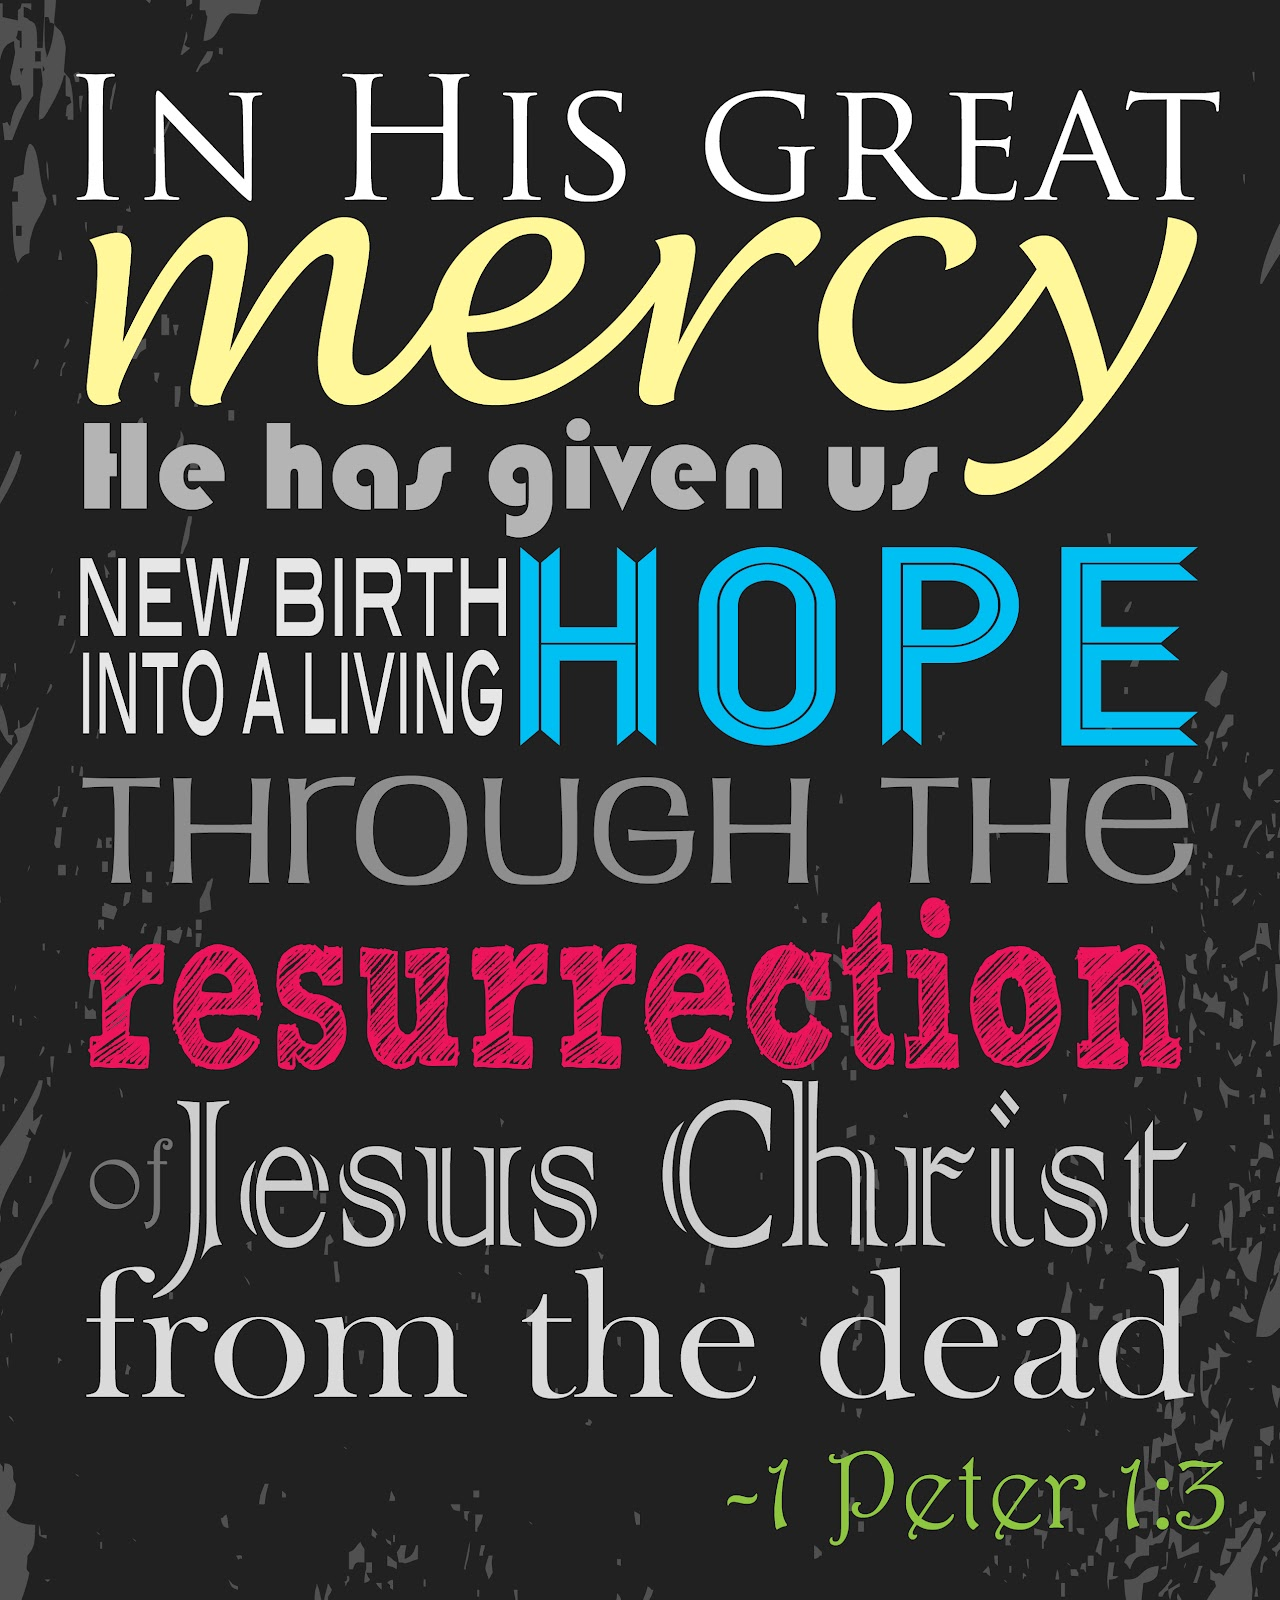 Easter Bible Quotes Amazing Easter Bible Quotes Gorgeous Best 25 Easter Bible Verses Ideas On